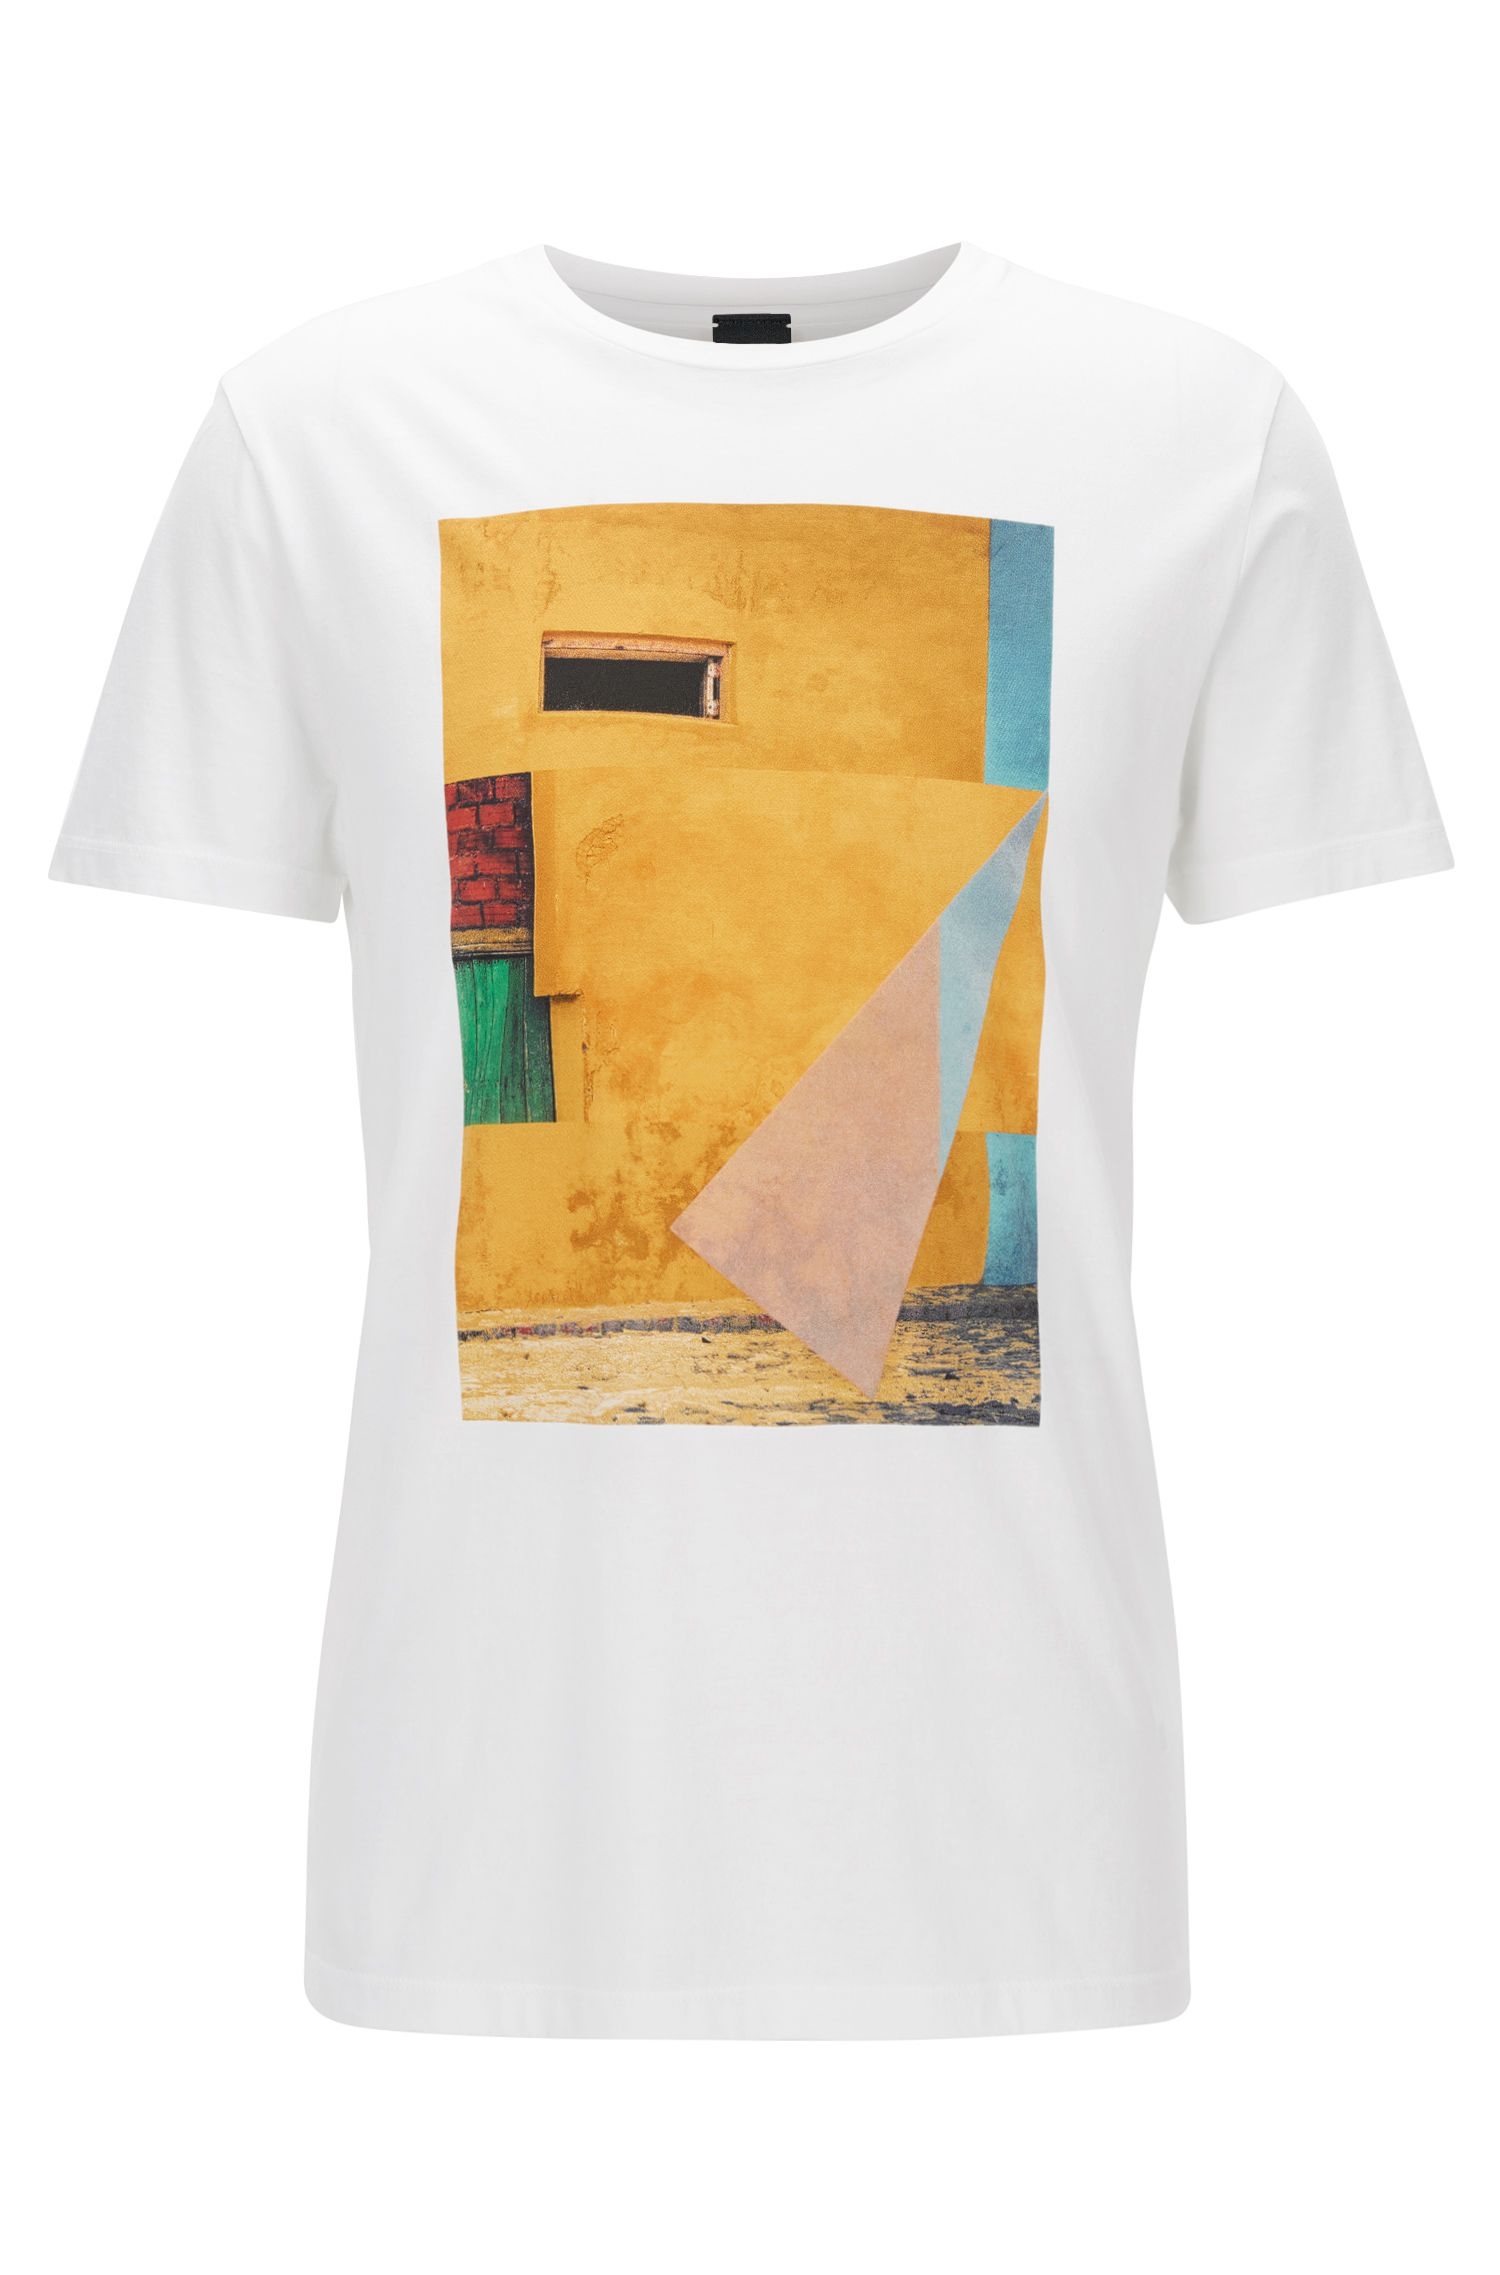 Cuba-Print Cotton Graphic T-Shirt | Turbulent